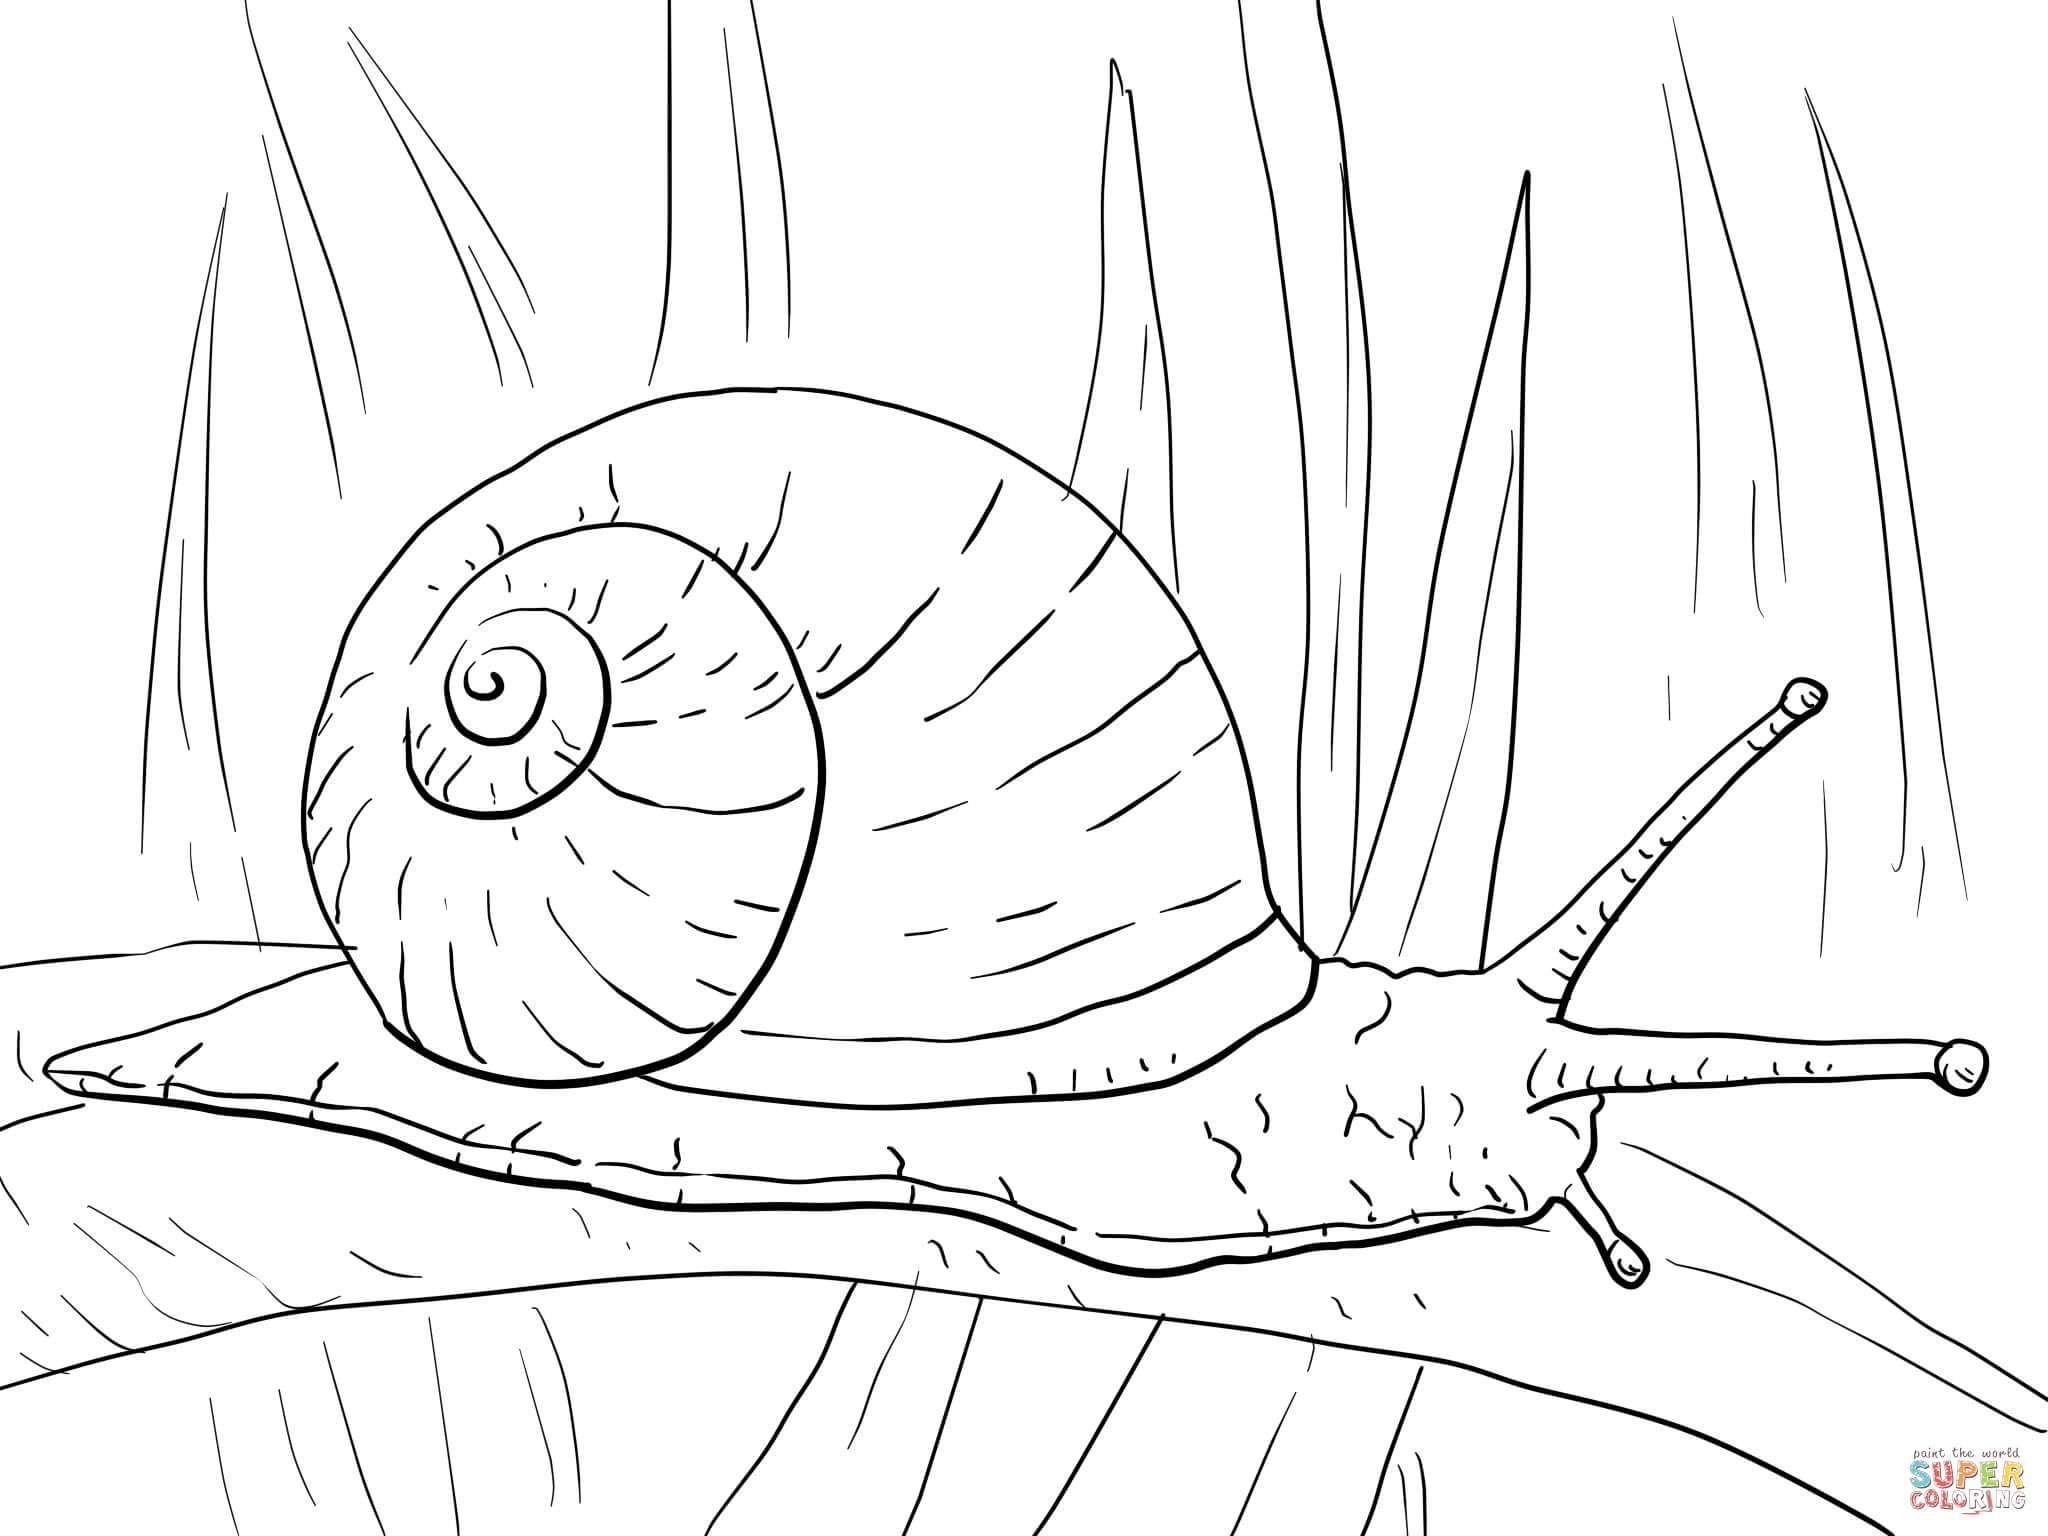 Snail coloring #5, Download drawings